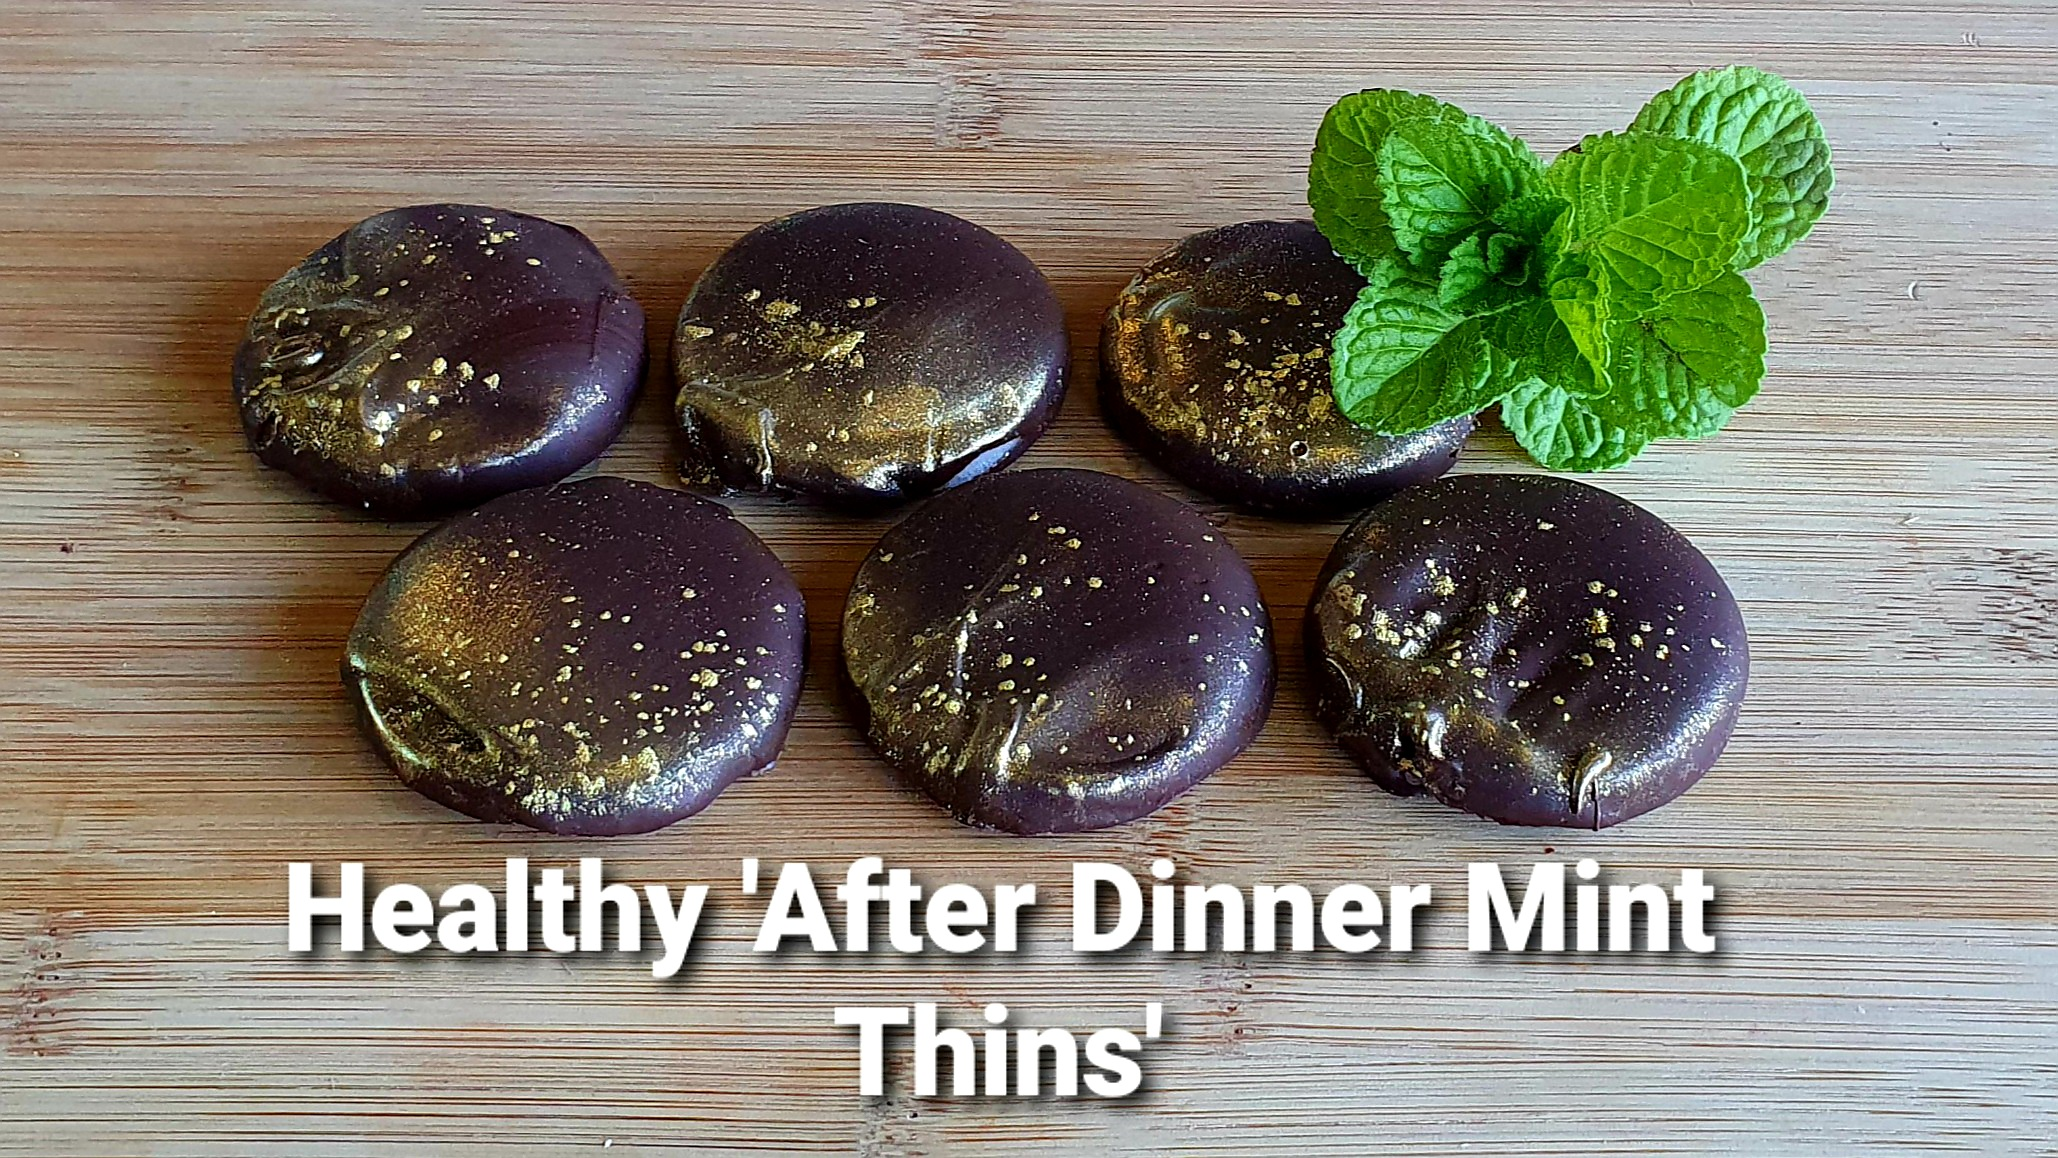 HEALTHY AFTER DINNER MINT THINS